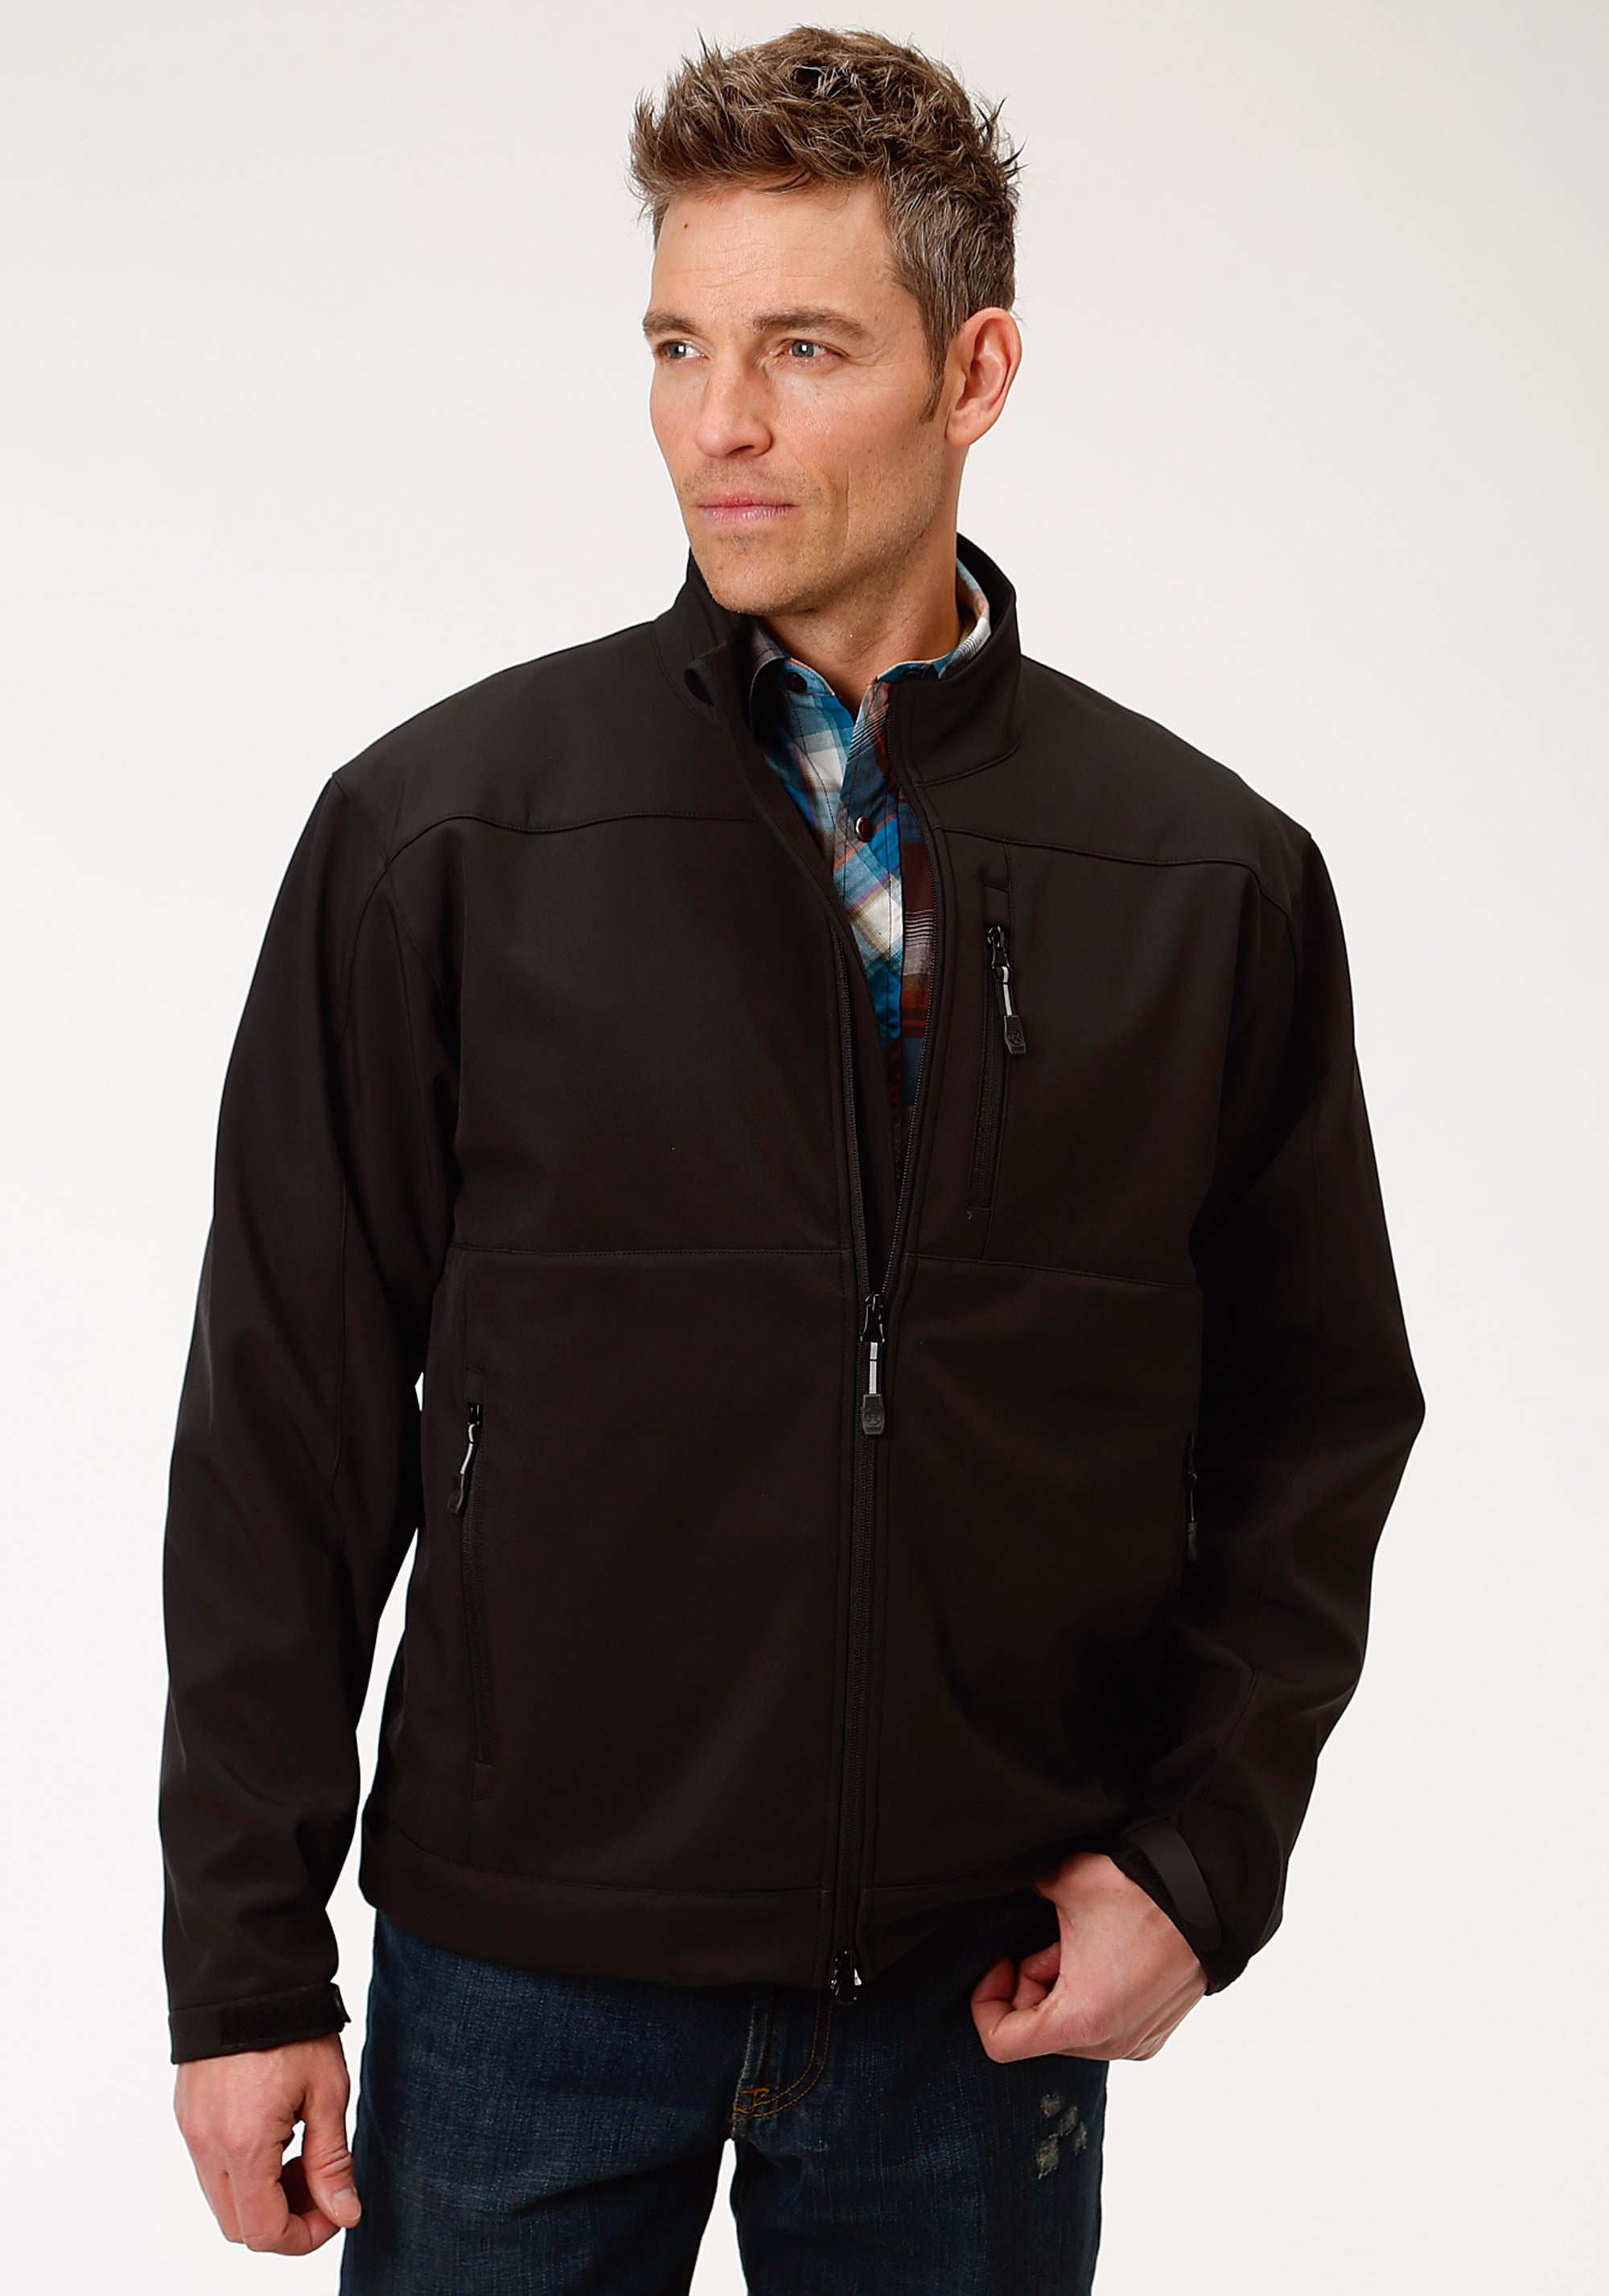 ROPER MENS BLACK 1321 BLACK WITH BLACK FLEECE ROPER OUTERWEAR- MEN'S JACKET